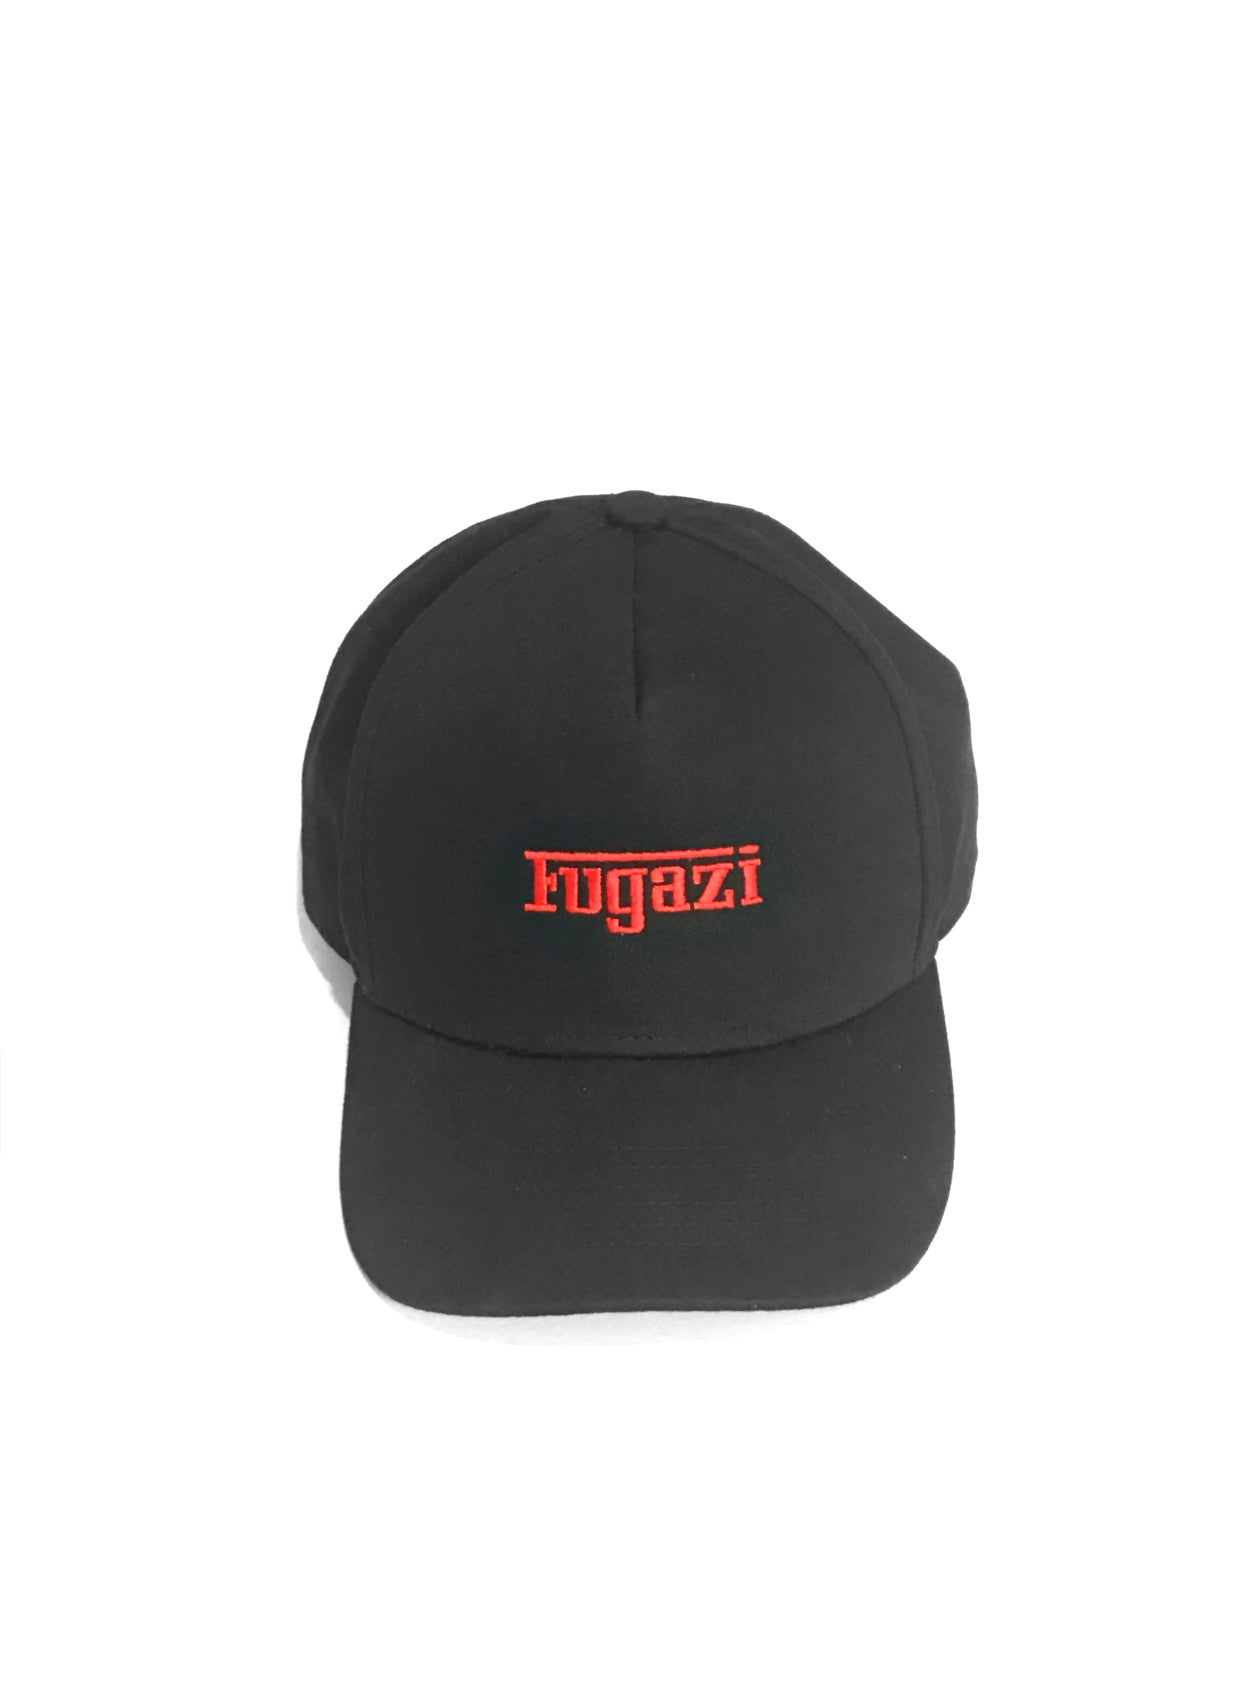 FUGAZI MOTORSPORT OG TEAM HAT